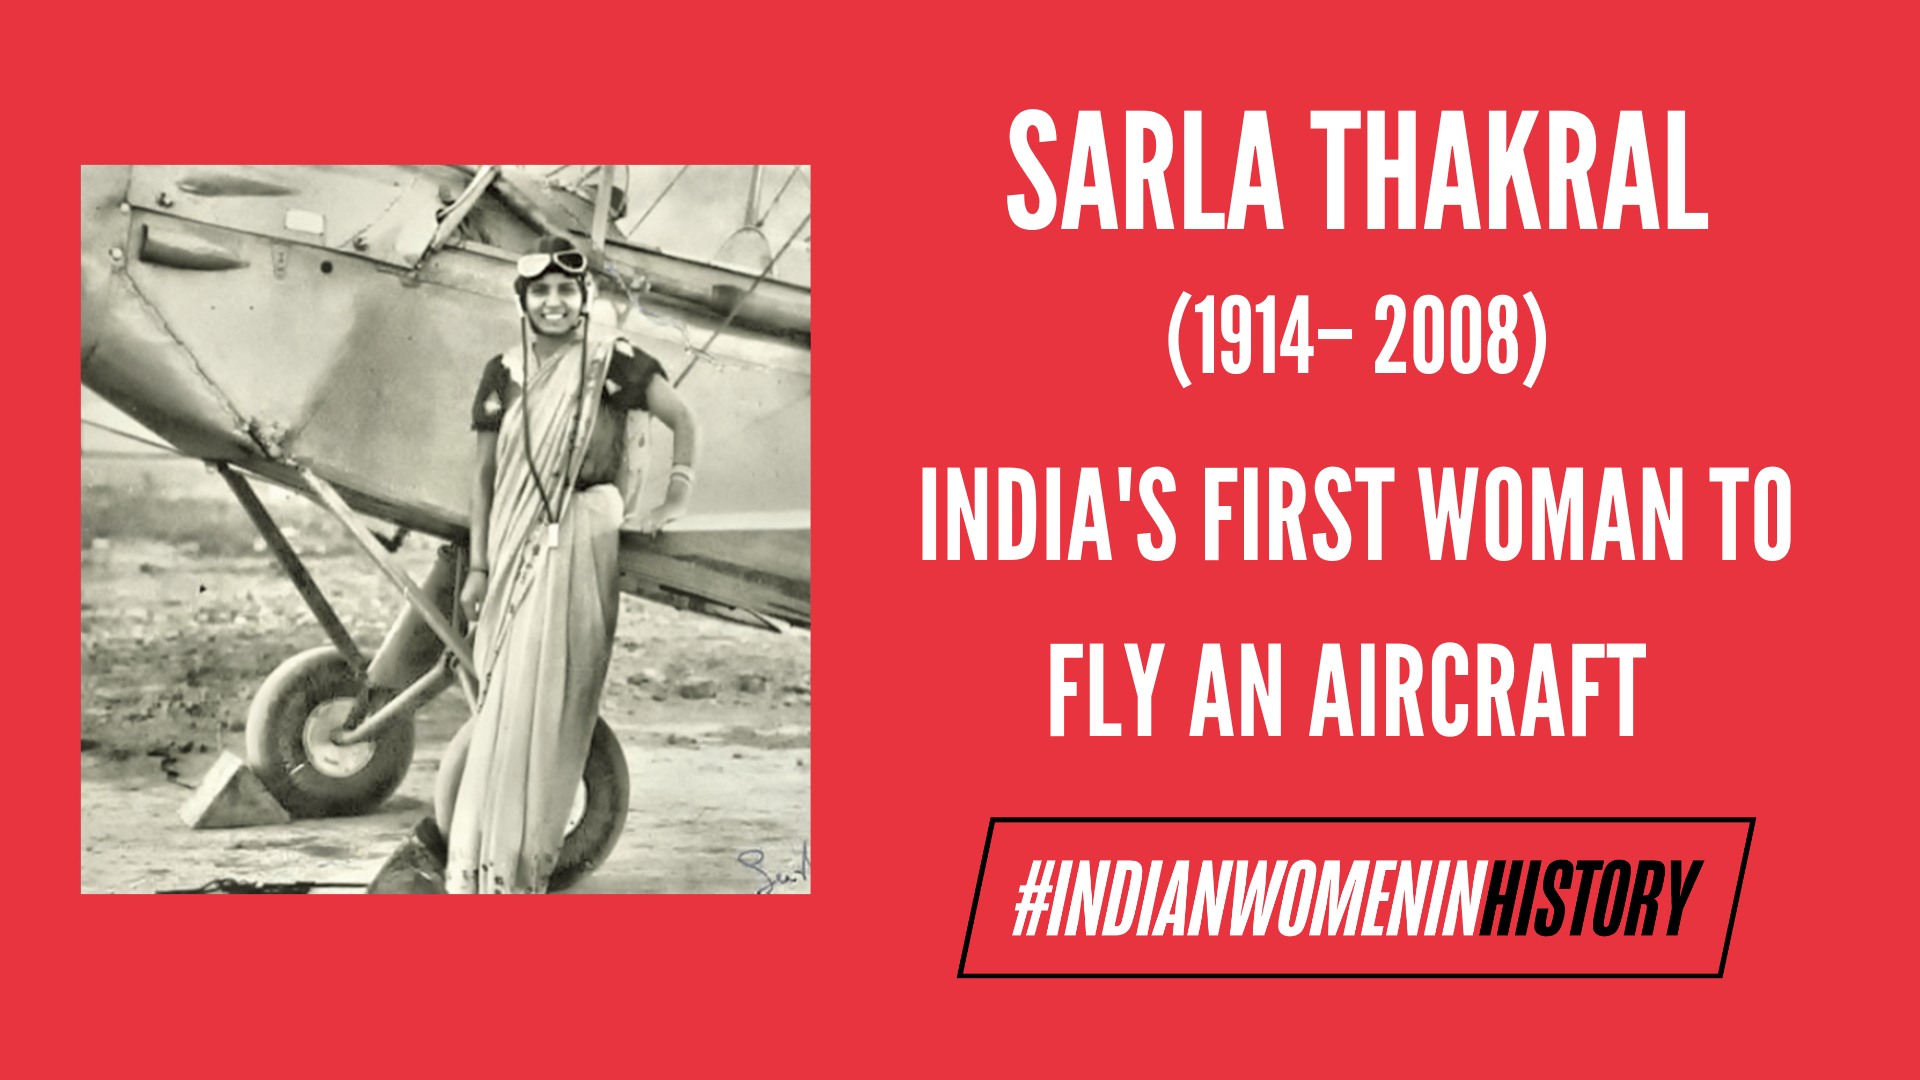 Sarla Thakral: India's First Woman To Fly An Aircraft |#IndianWomenInHistory